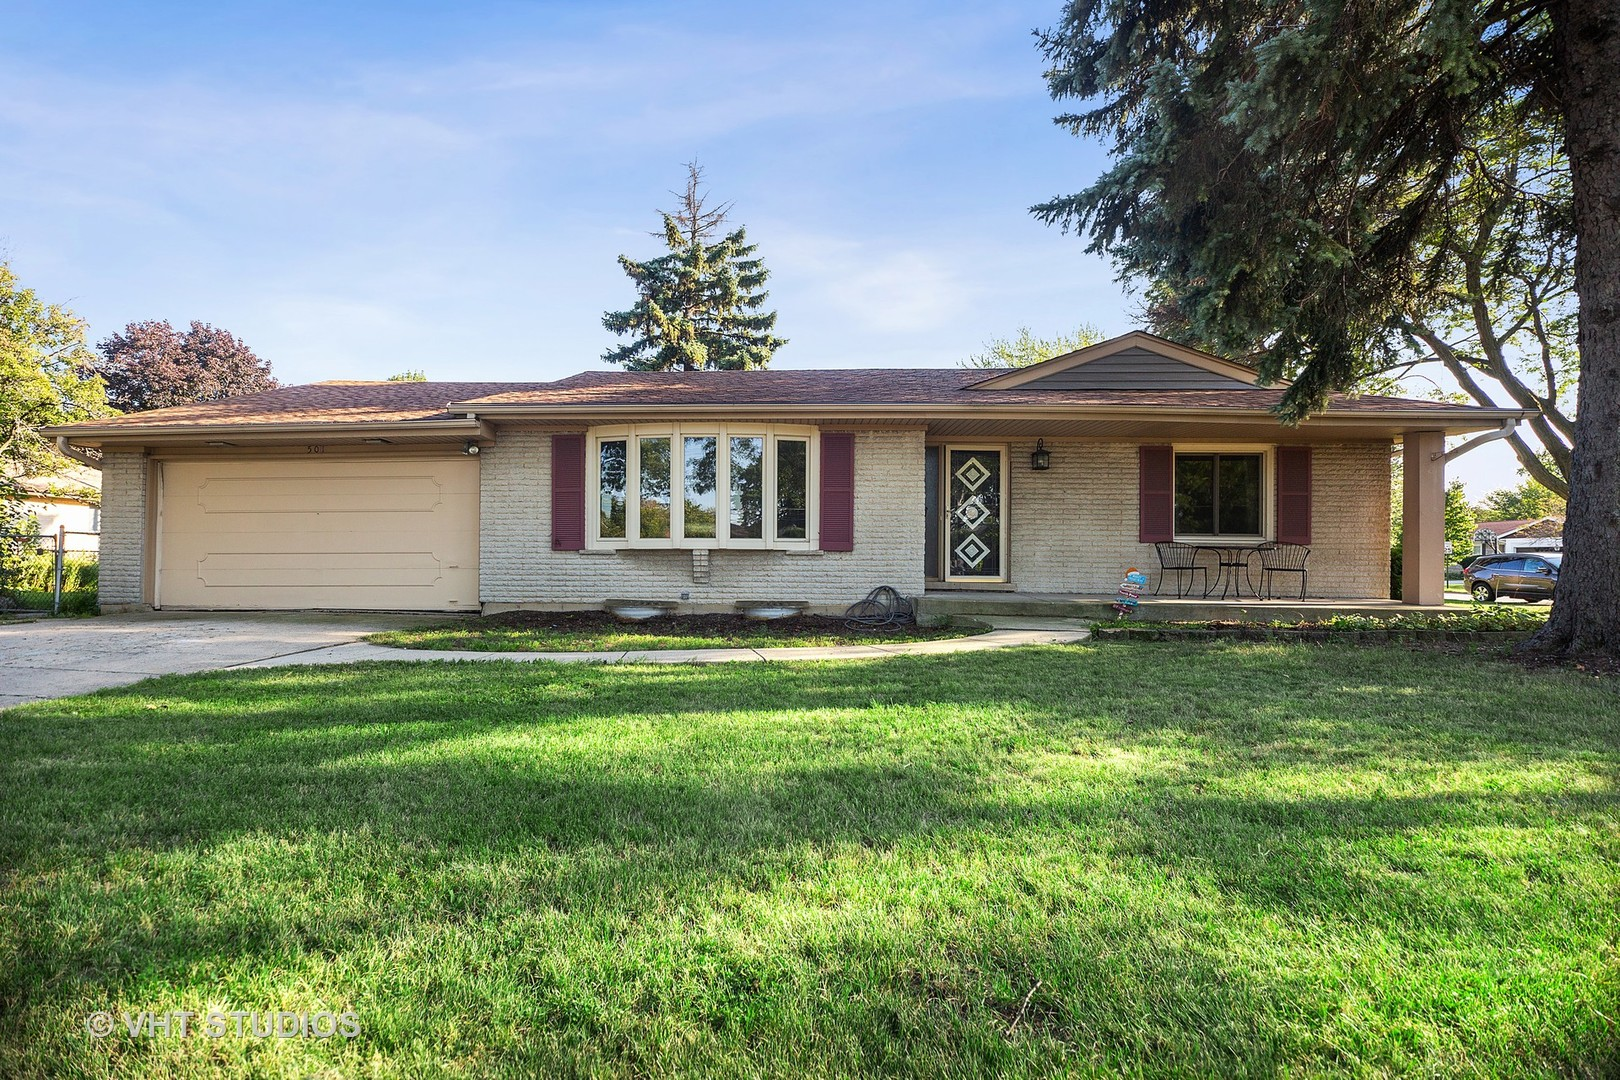 501 West Dempster Street, Des Plaines in Cook County, IL 60016 Home for Sale